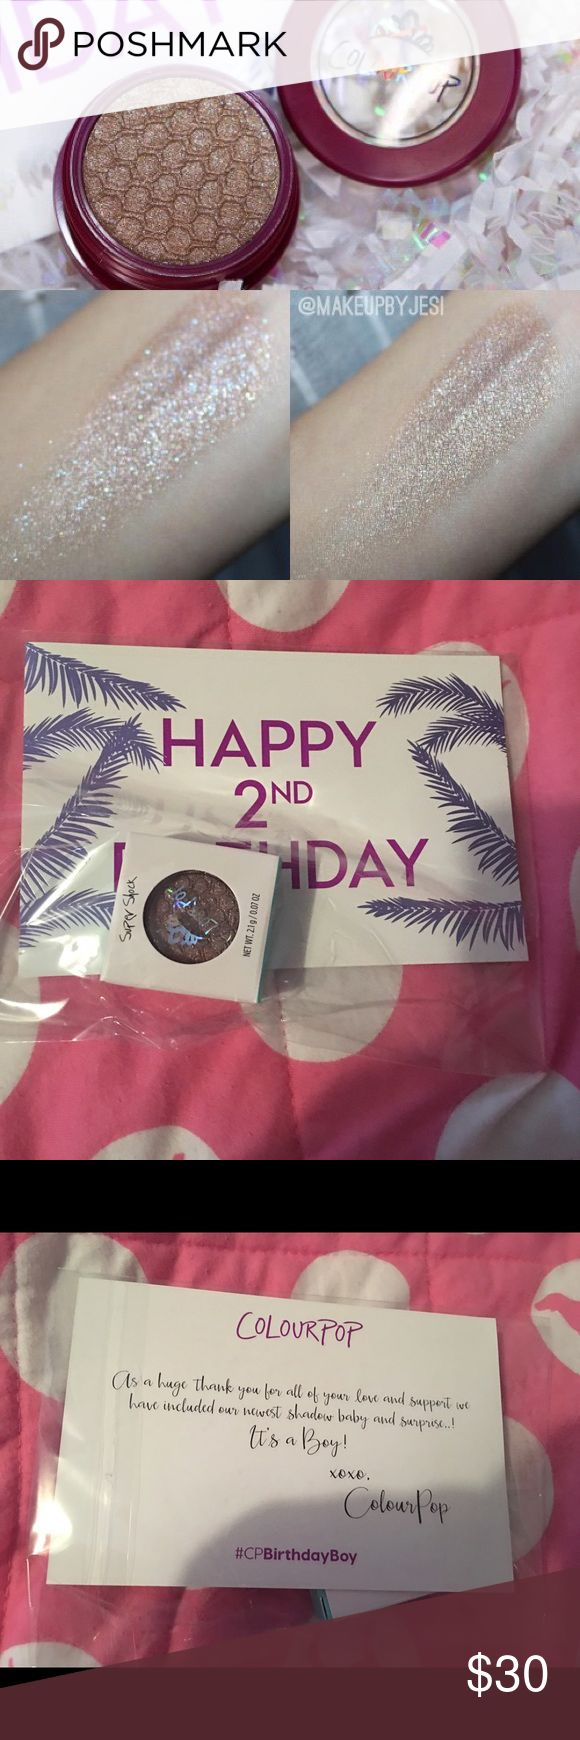 Colourpop Birthday Boy eyeshadow Birthday Boy eyeshadow from Colourpop..limited edition..I made and order and forgot something so I made a second order and they sent me two of these eyeshadows. This one has never been opened Colourpop Makeup Eyeshadow